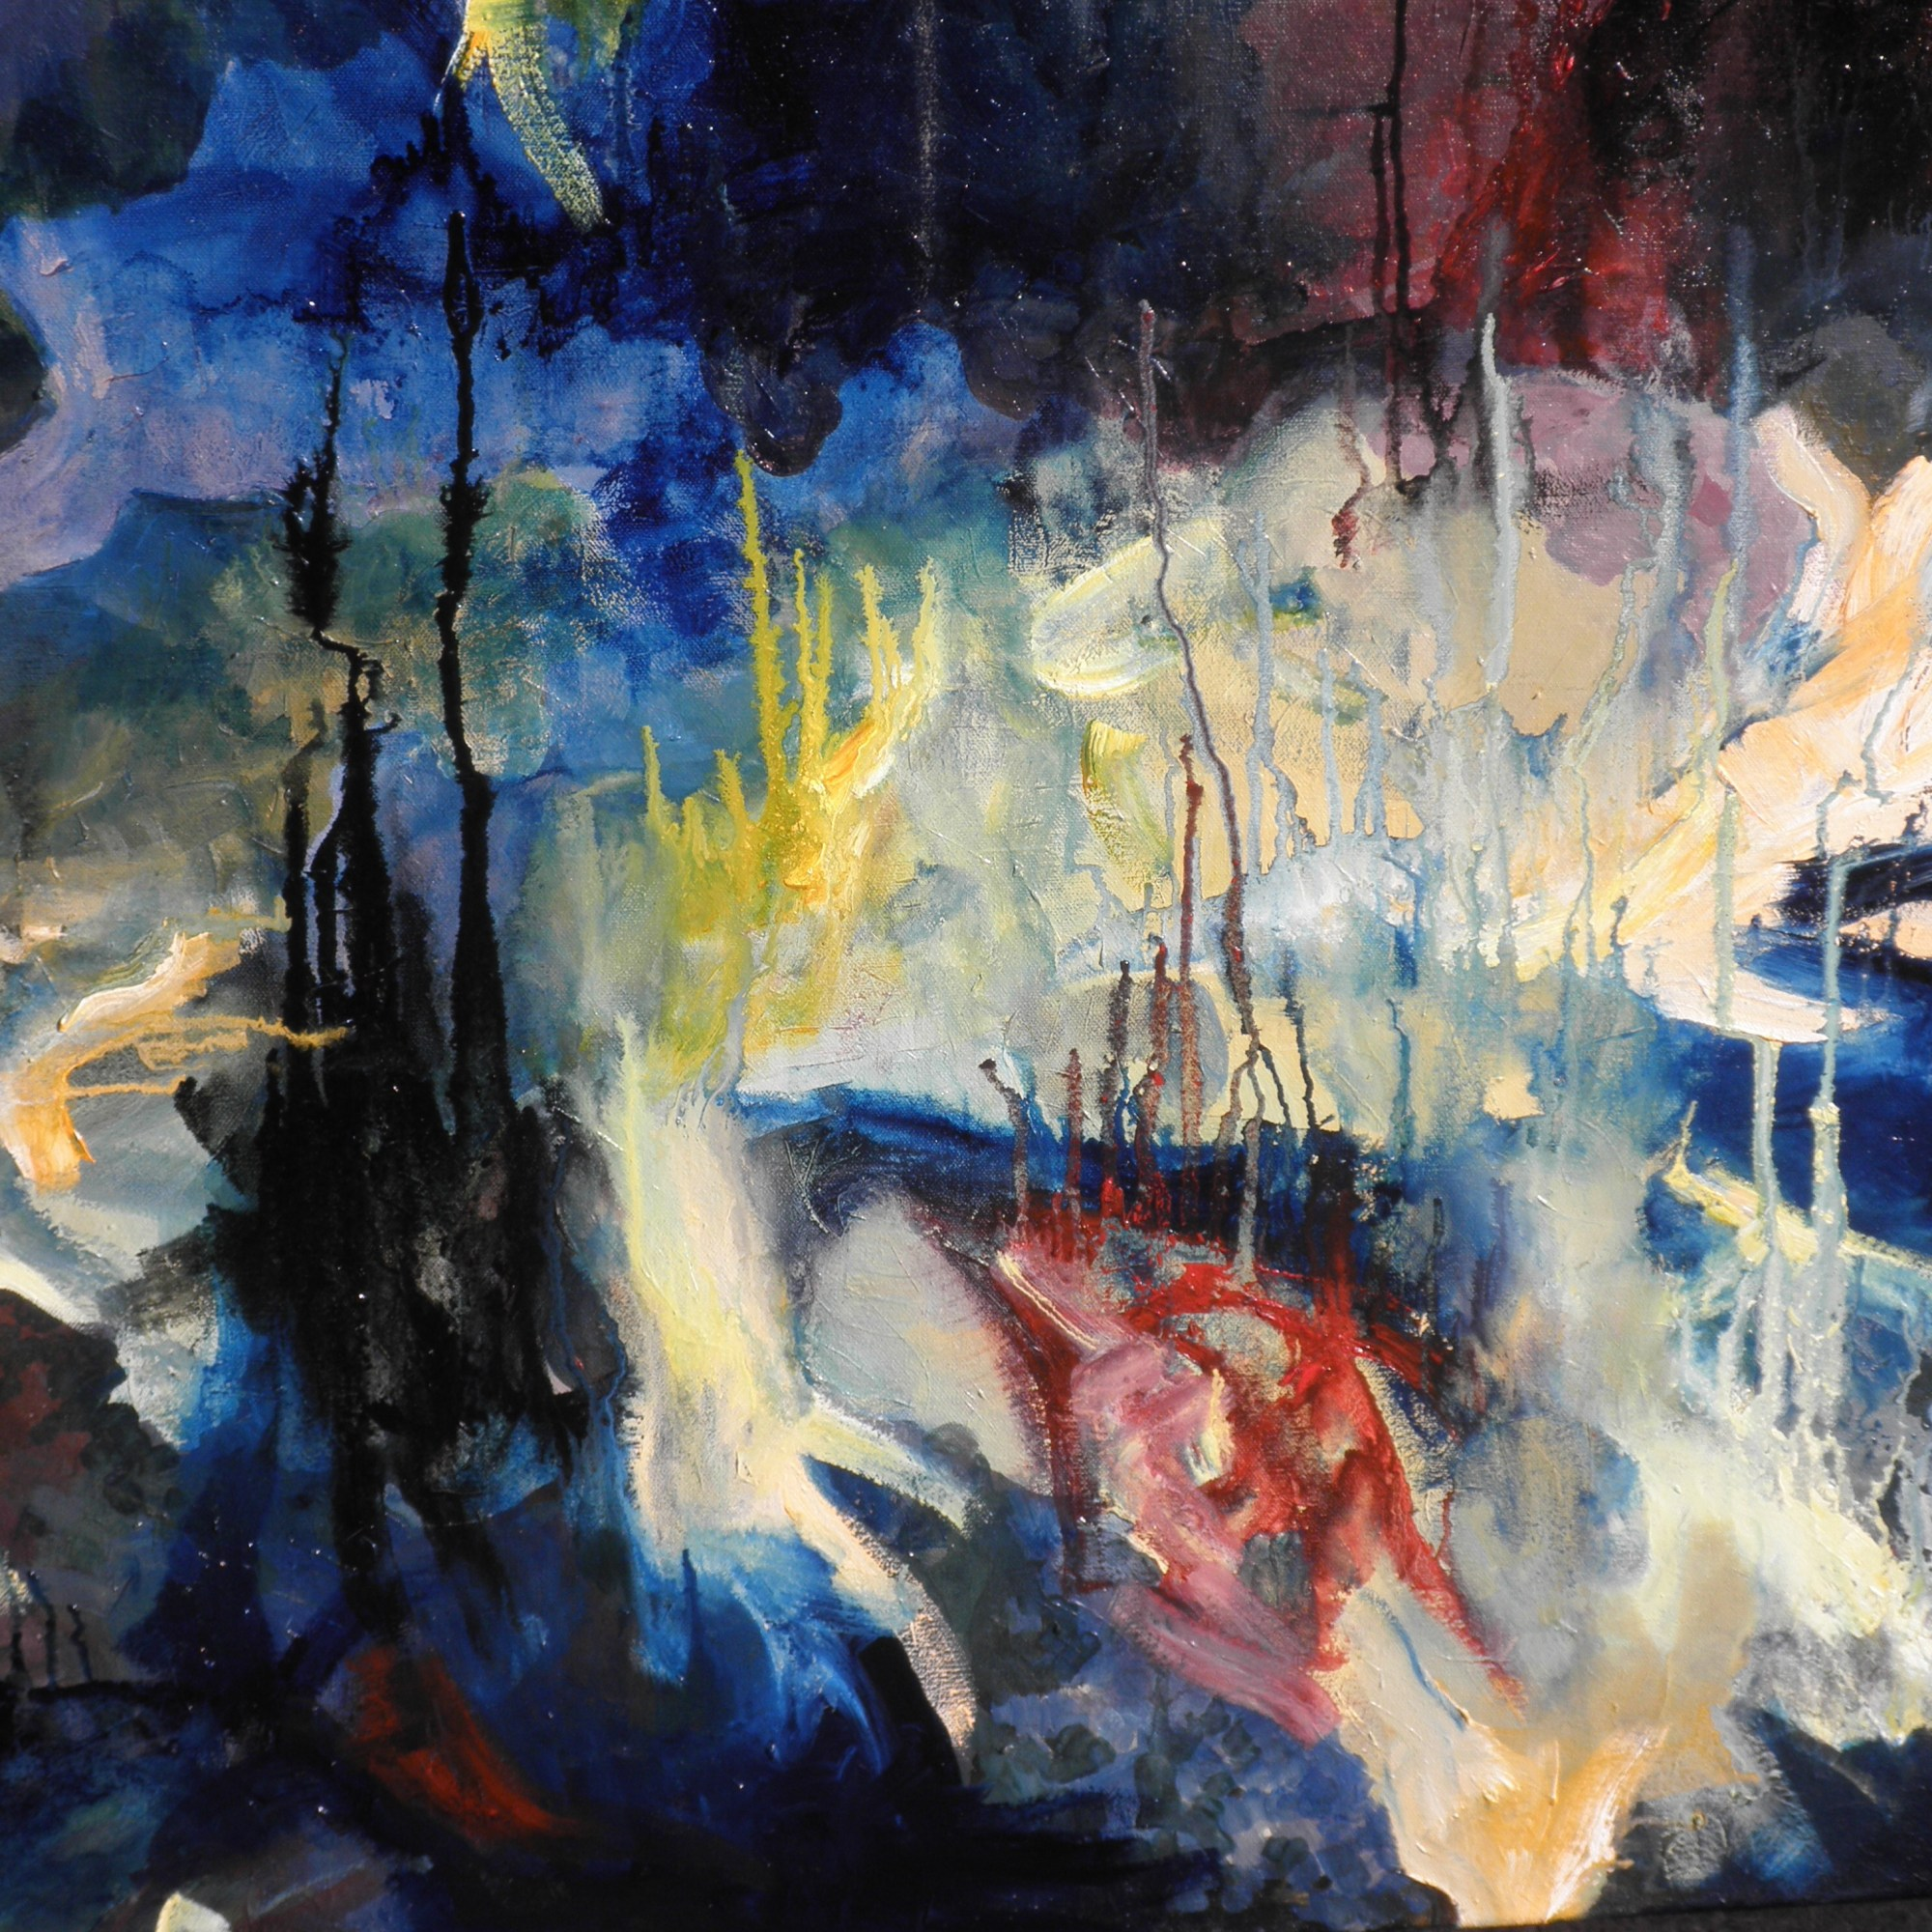 Abstract painting (art portfolio and blog)